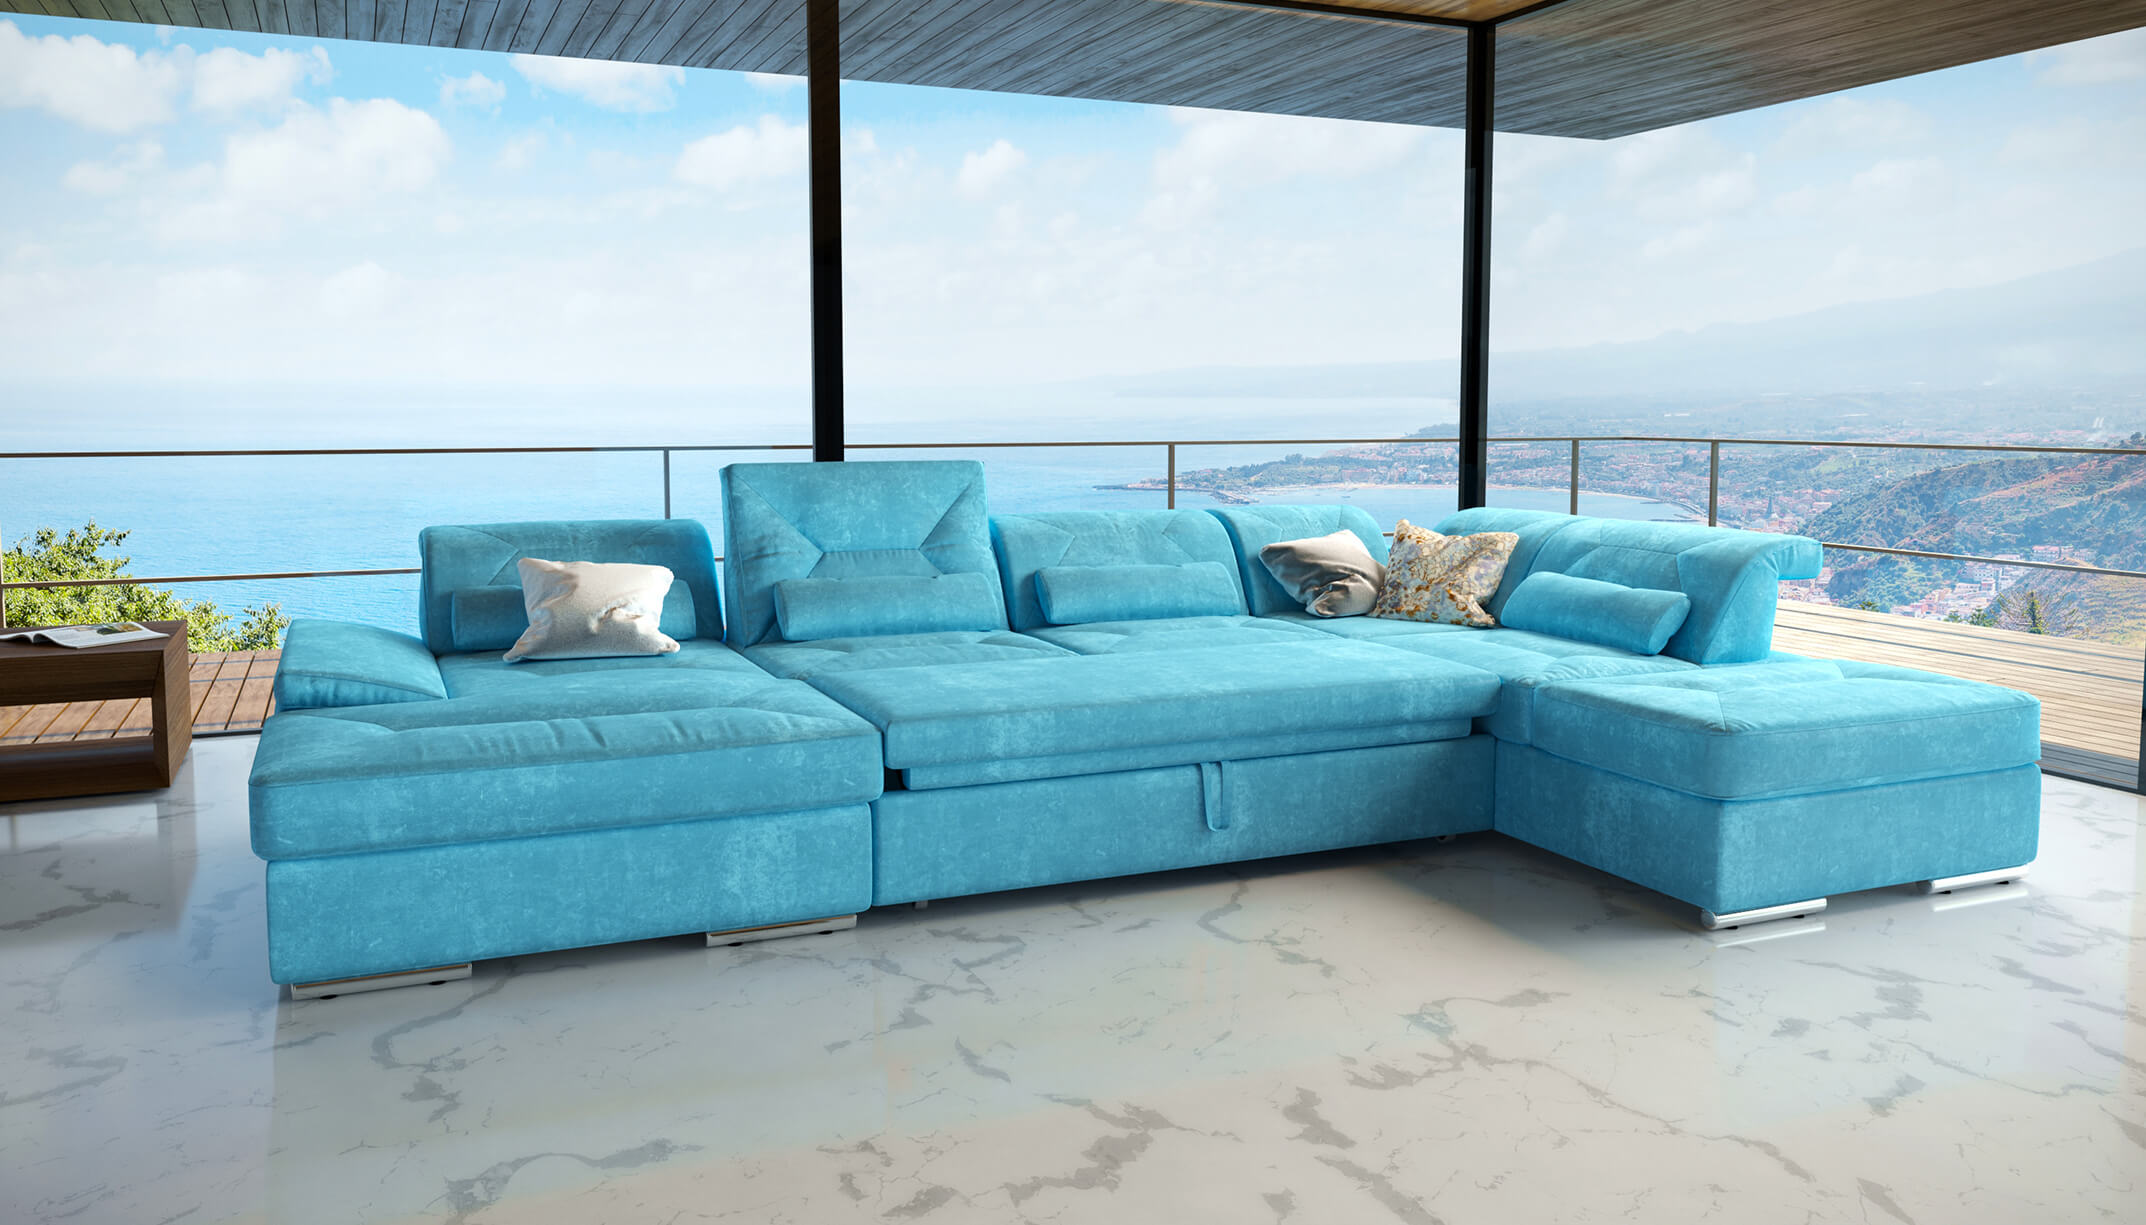 Modern & Contemporary Furniture from Europe - Nordholtz, Cheap